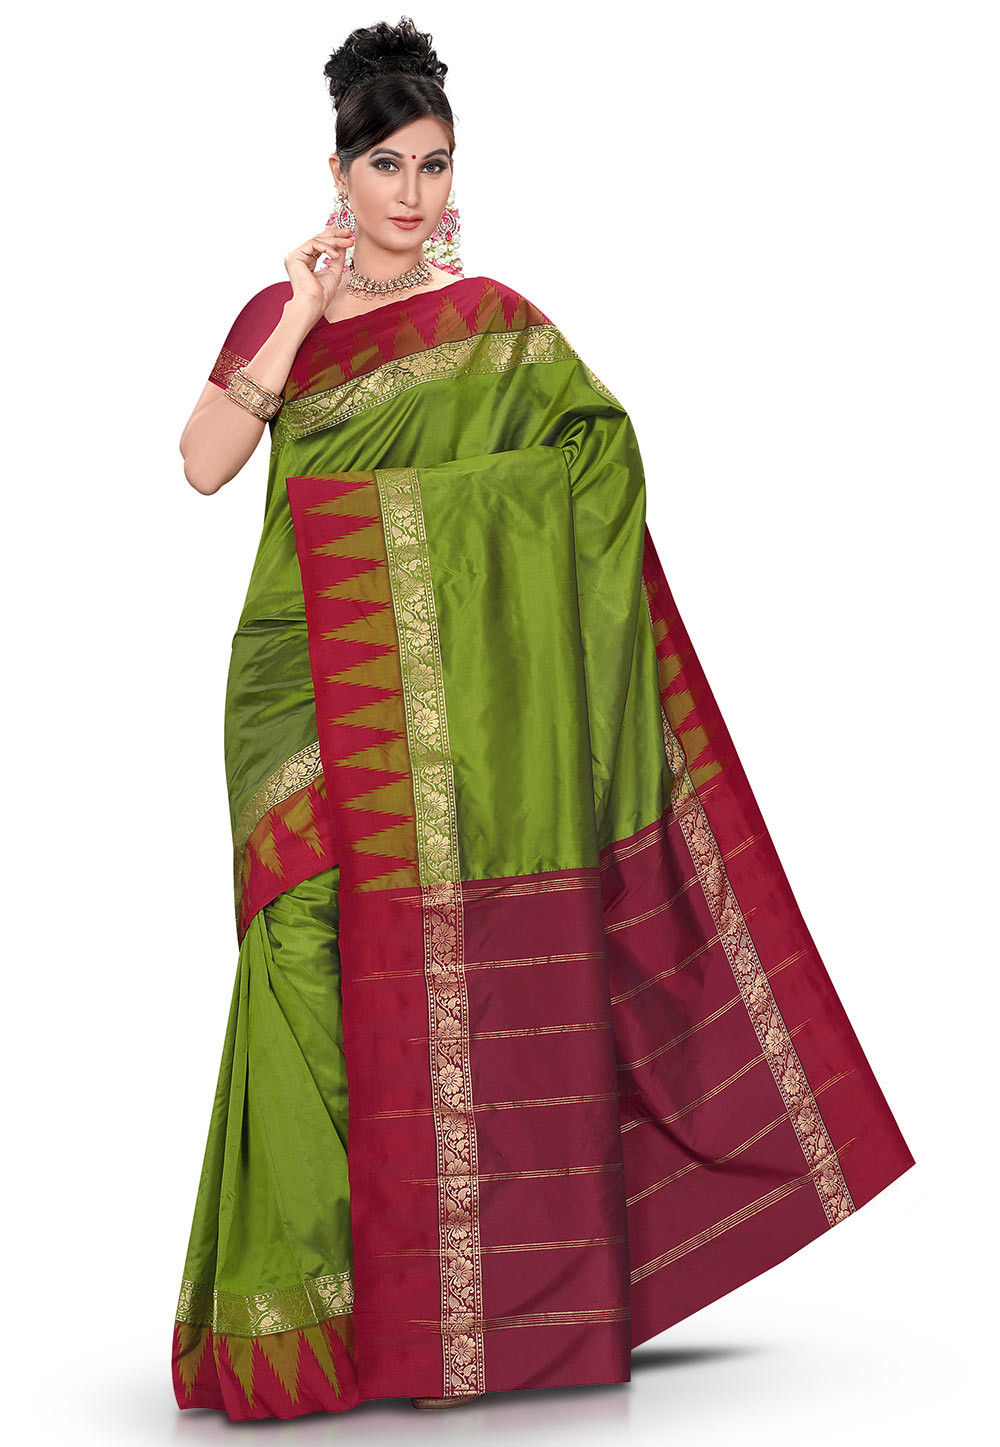 Woven Kanchipuram Saree in Green